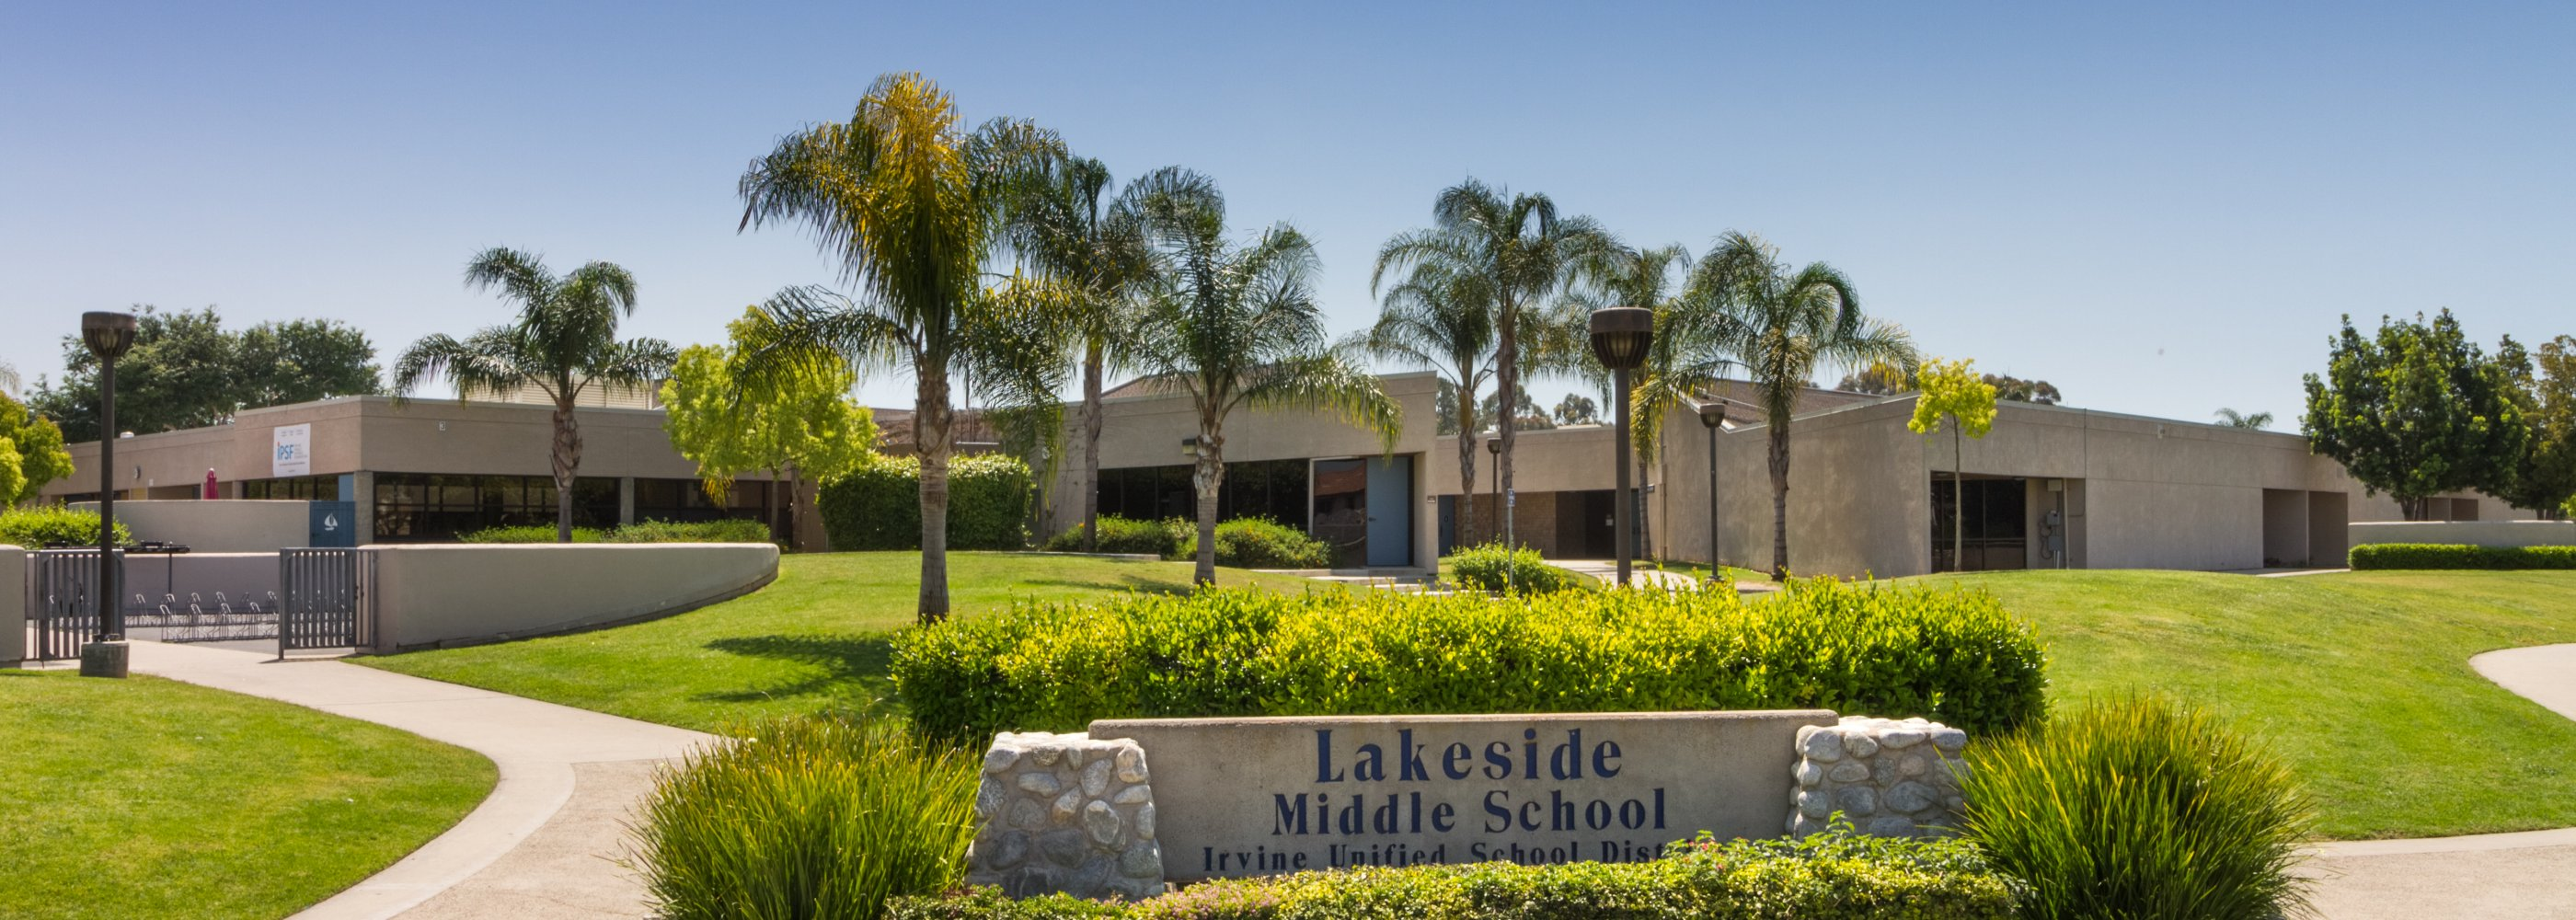 front of lakeside middle school